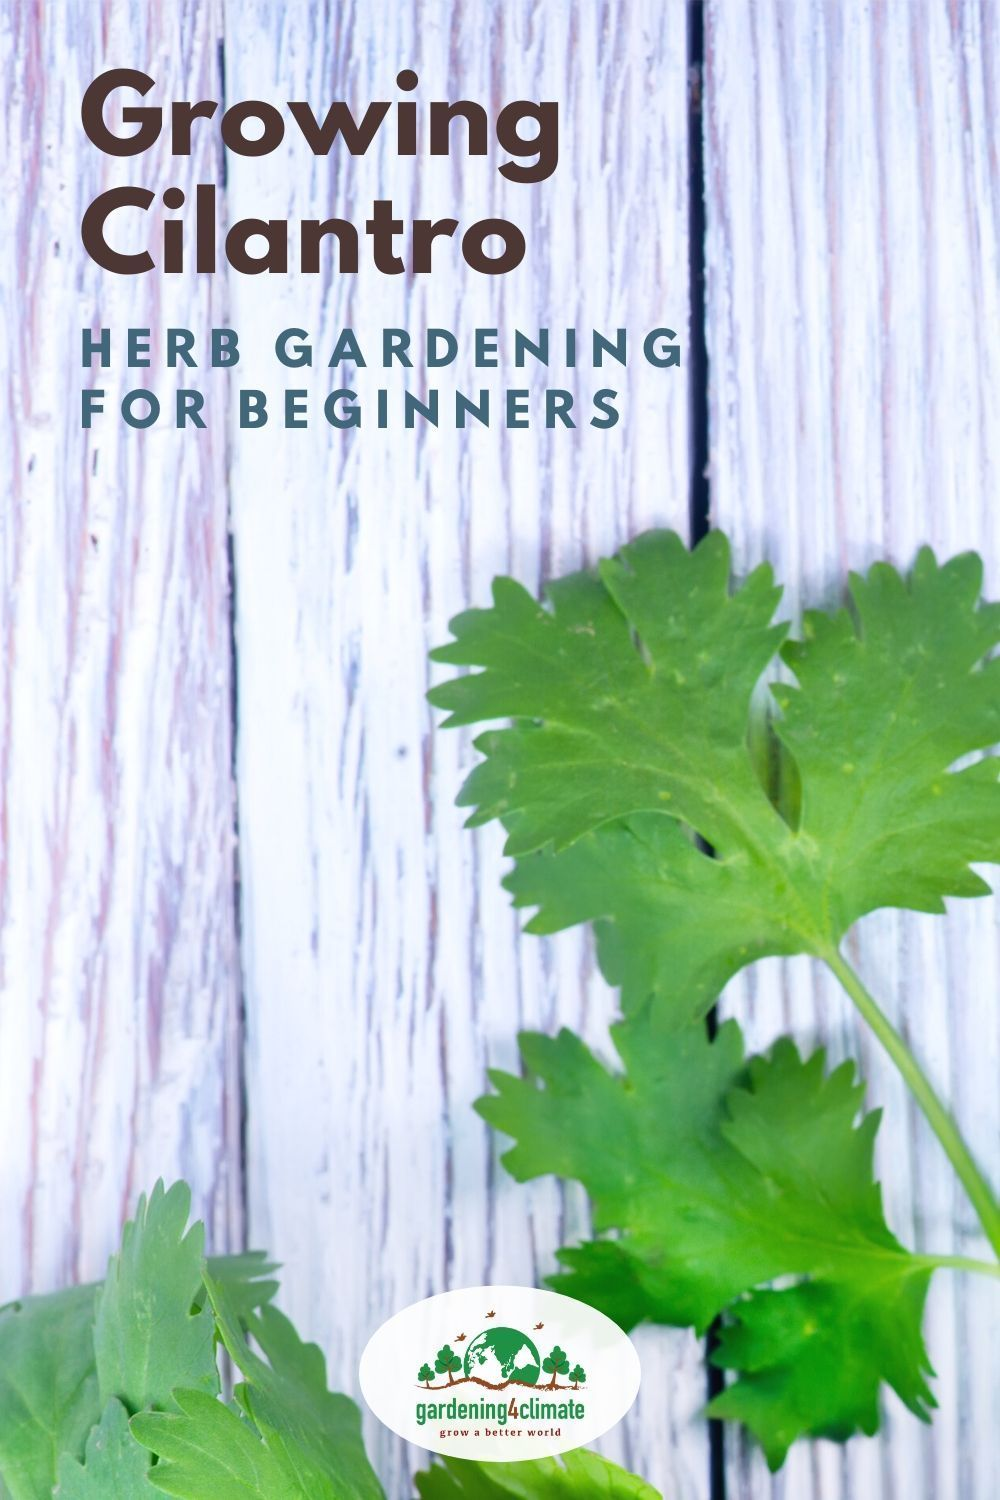 Growing cilantro how to grow cilantro for beginners